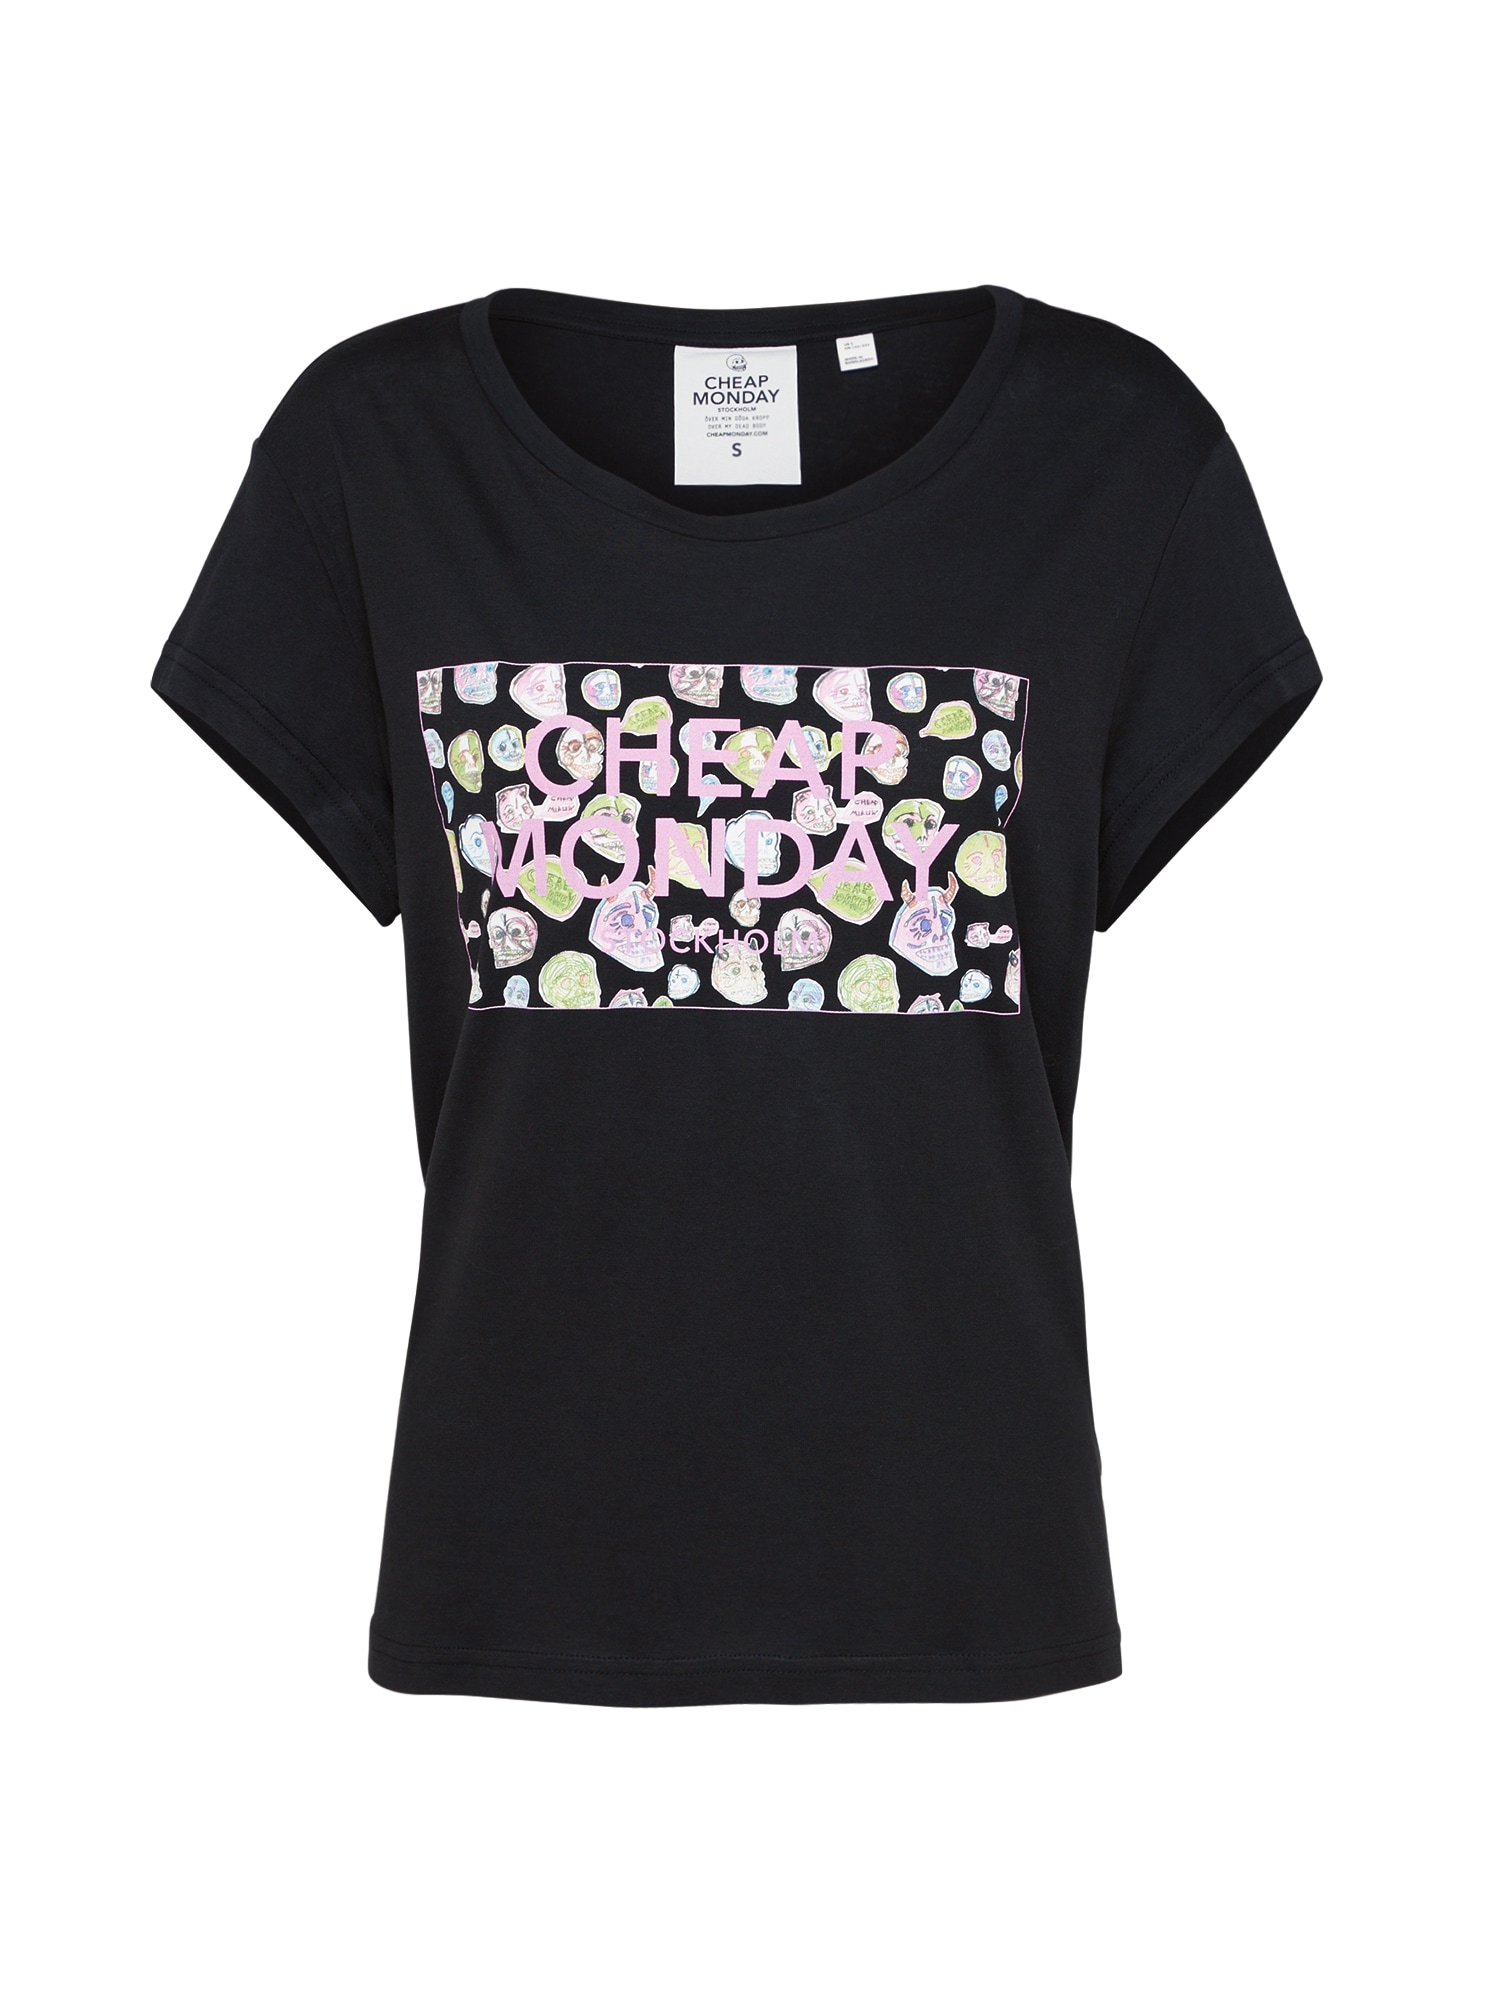 CHEAP MONDAY Dames Shirt Have tee Logo box gemengde kleuren zwart